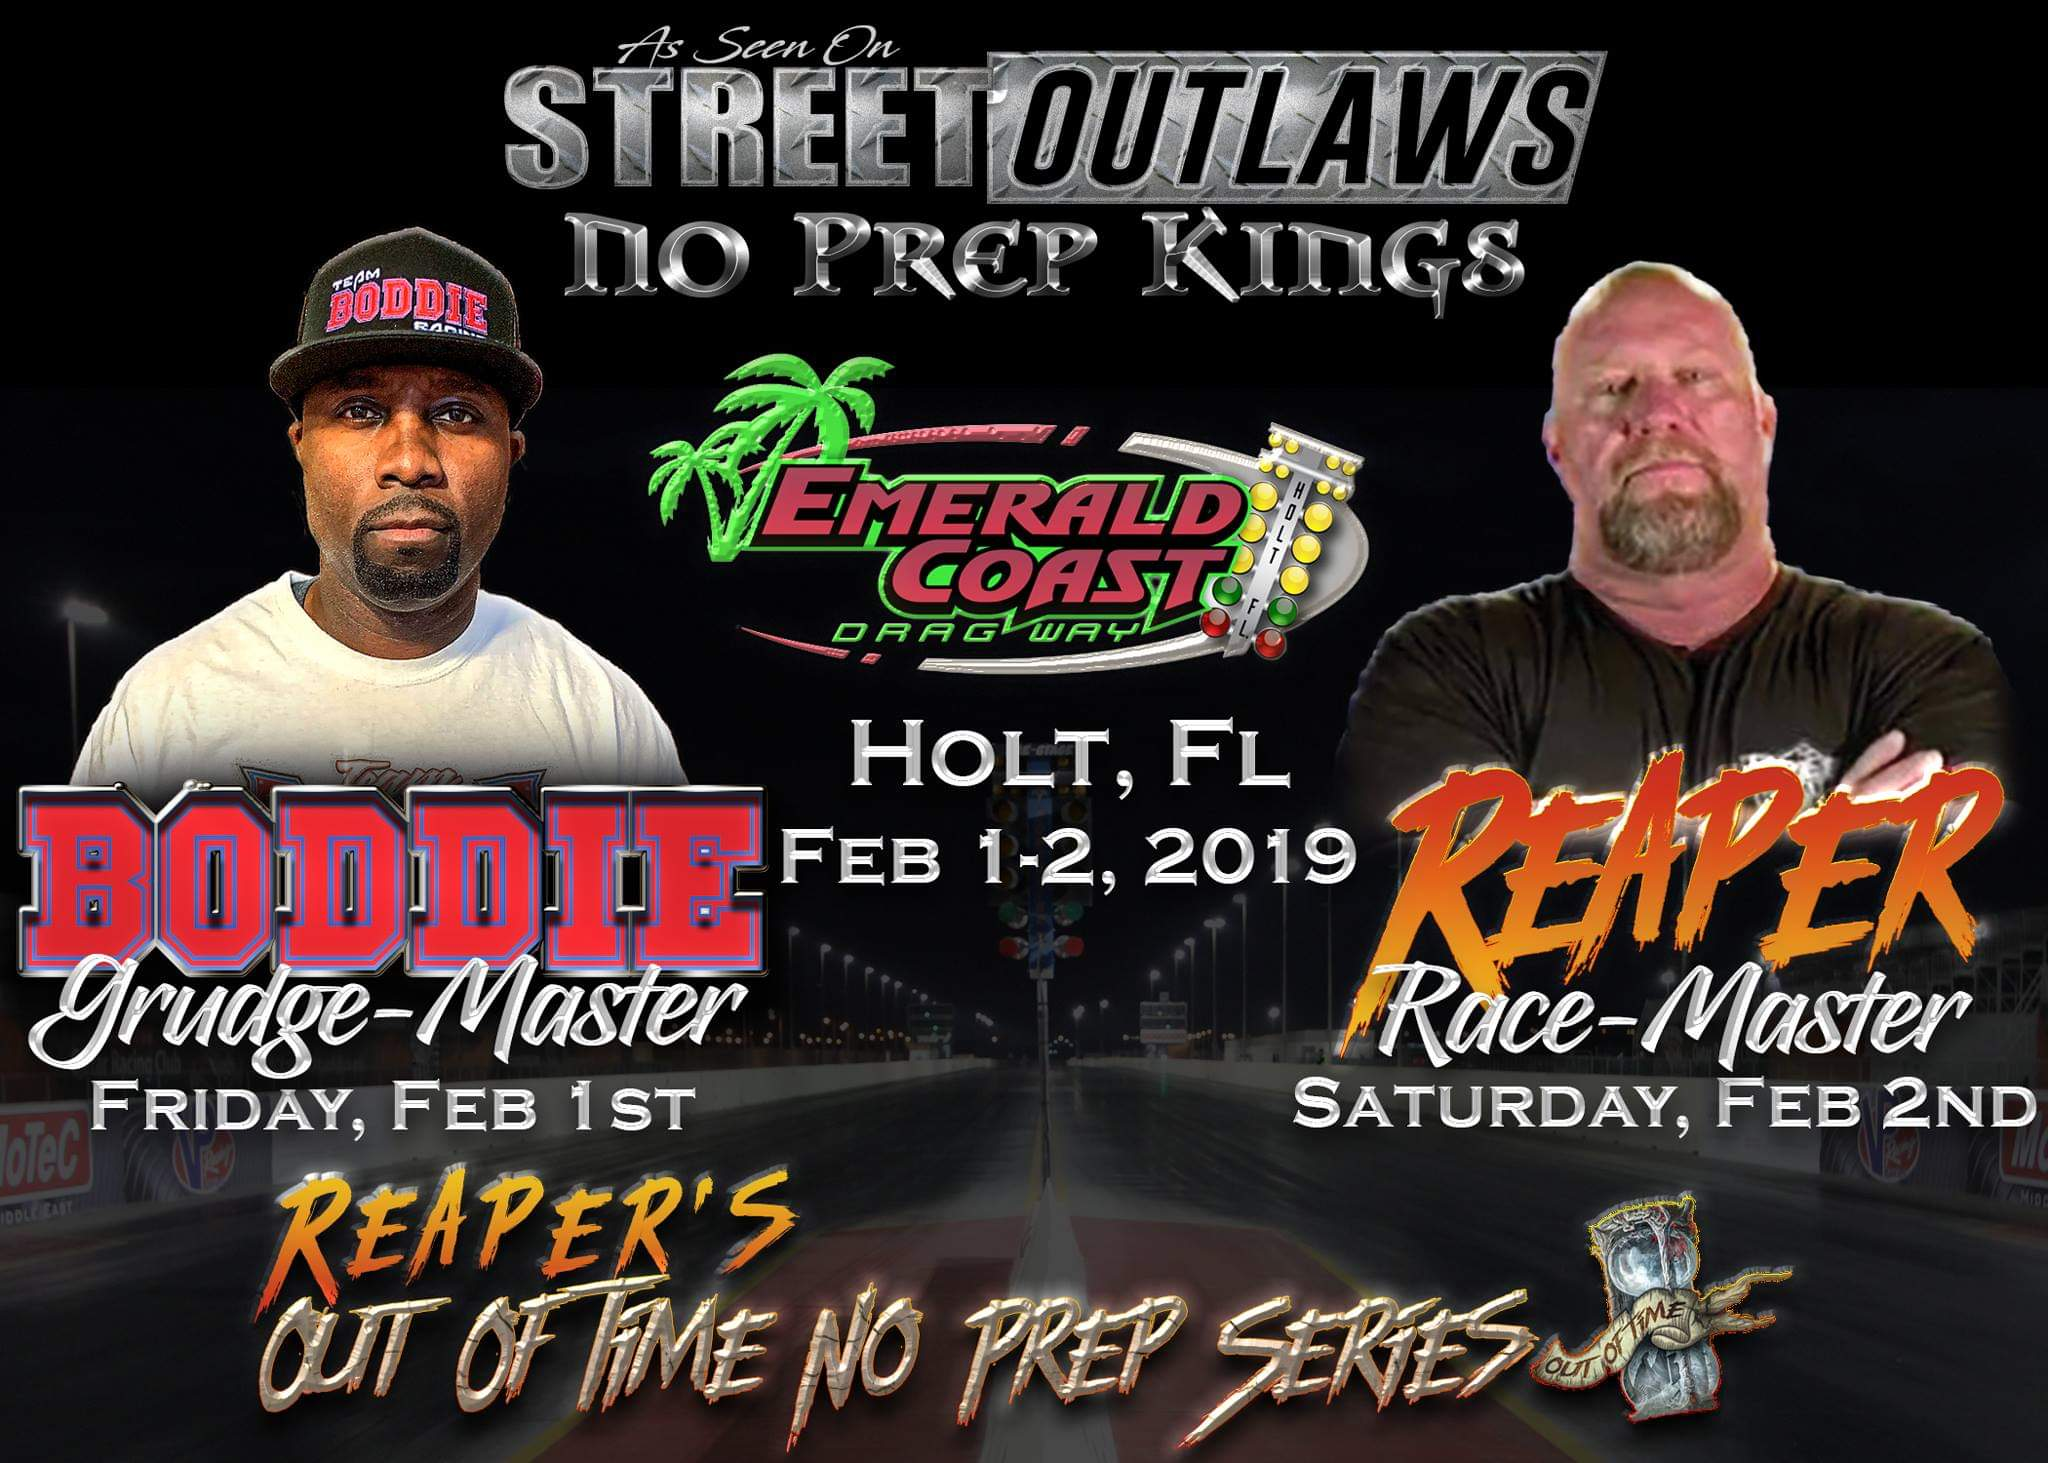 OUT OF TIME NO PREP SERIES THIS WEEKEND! – Emerald Coast Dragway